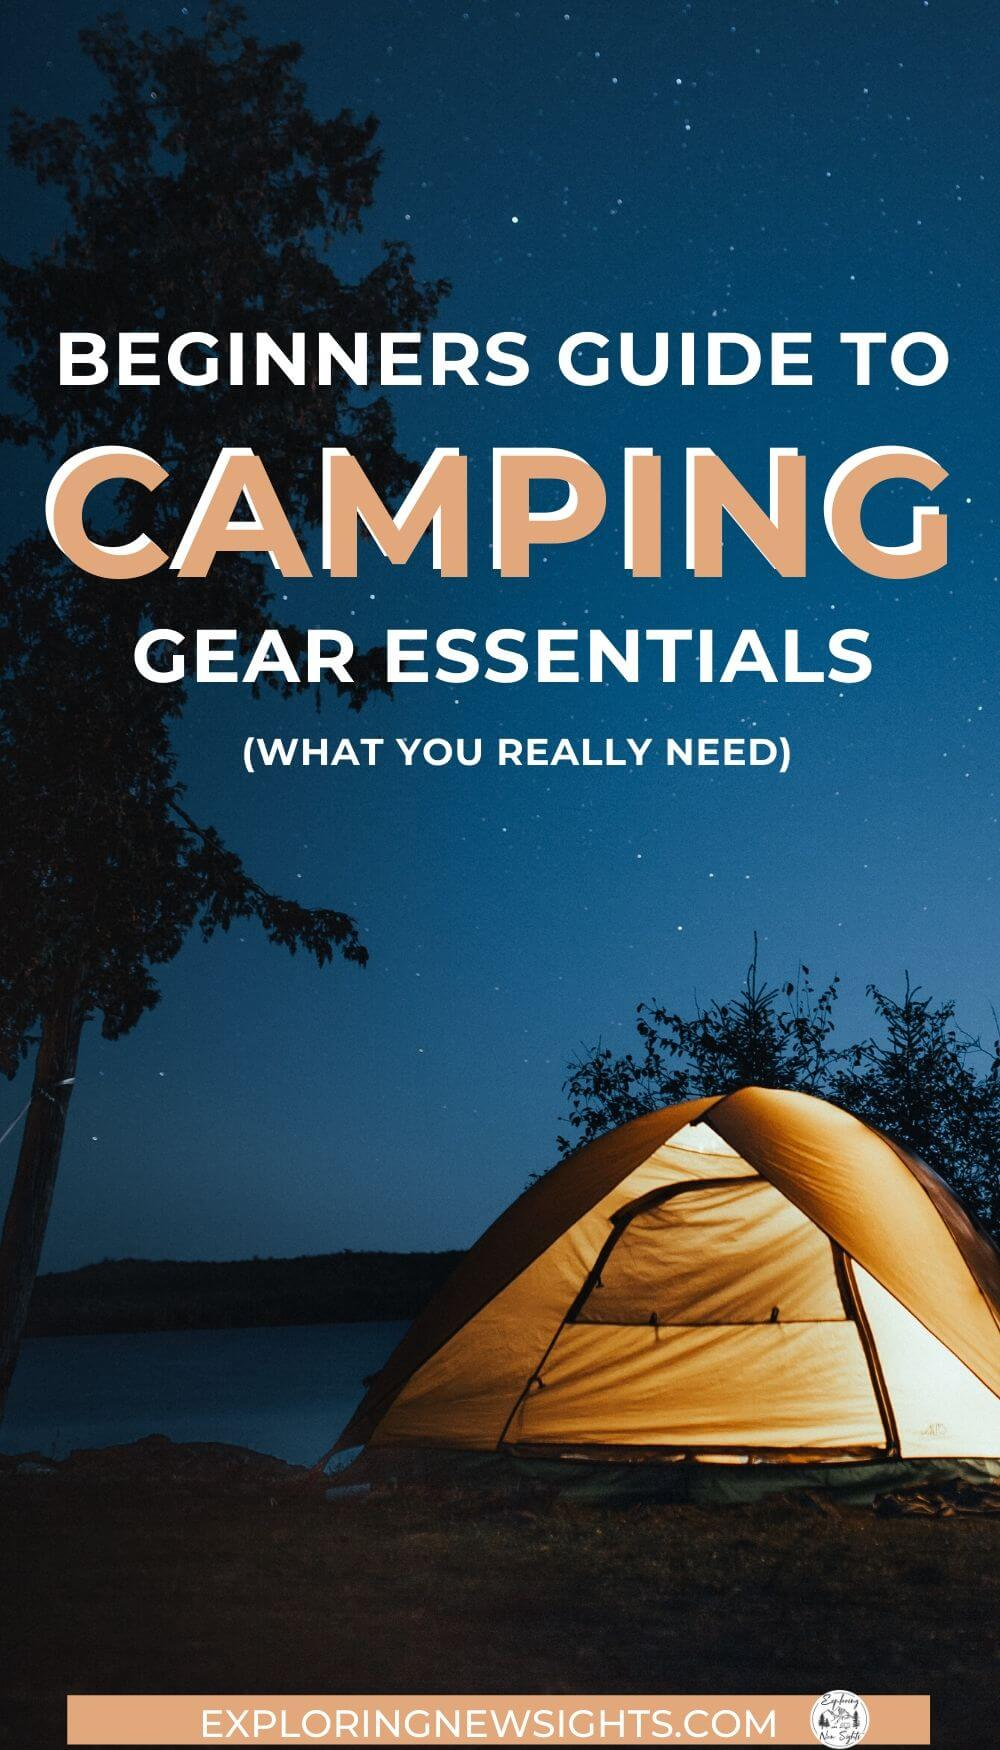 really like 4 1 - Beginner's Guide to Camping Gear Essentials - What You Really Need